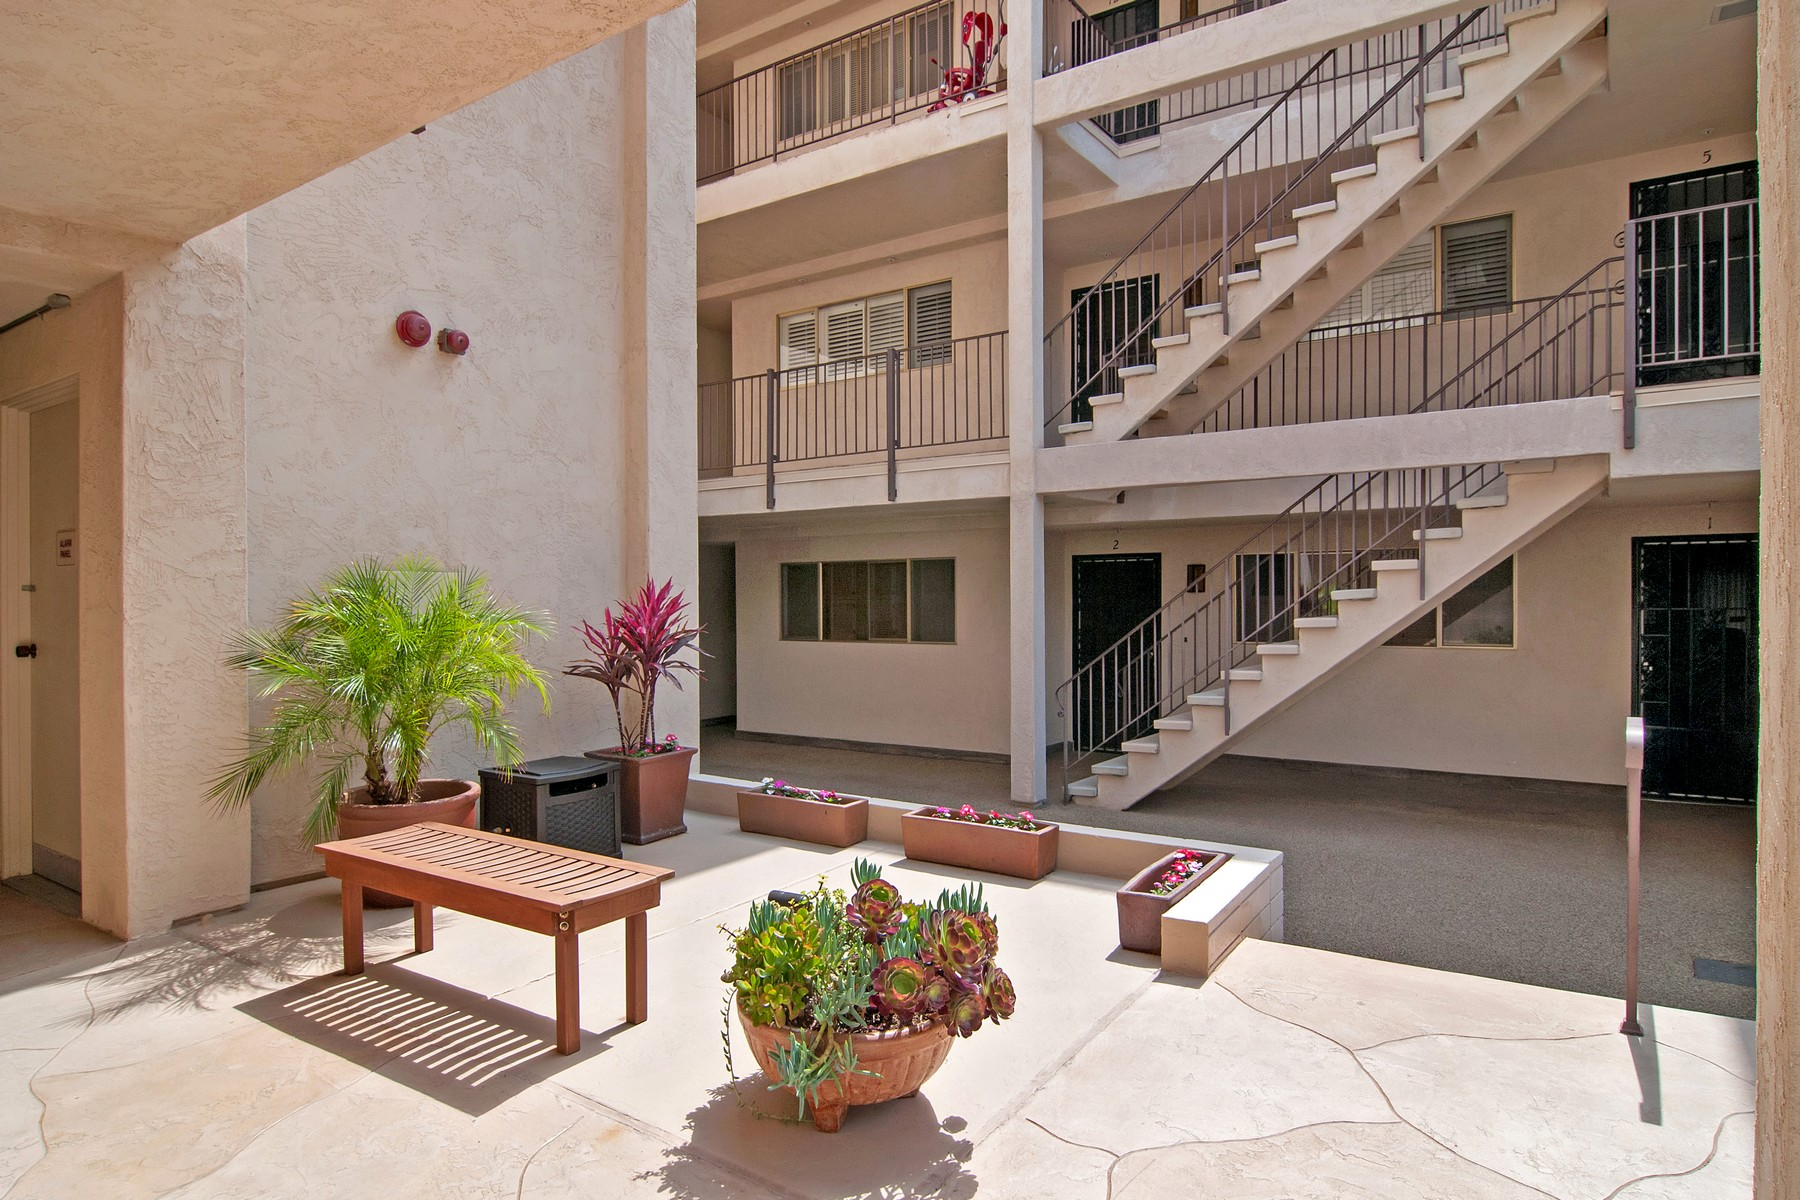 Additional photo for property listing at 390 San Antonio Avenue 390 San Antonio Avenue 15 San Diego, California 92106 United States